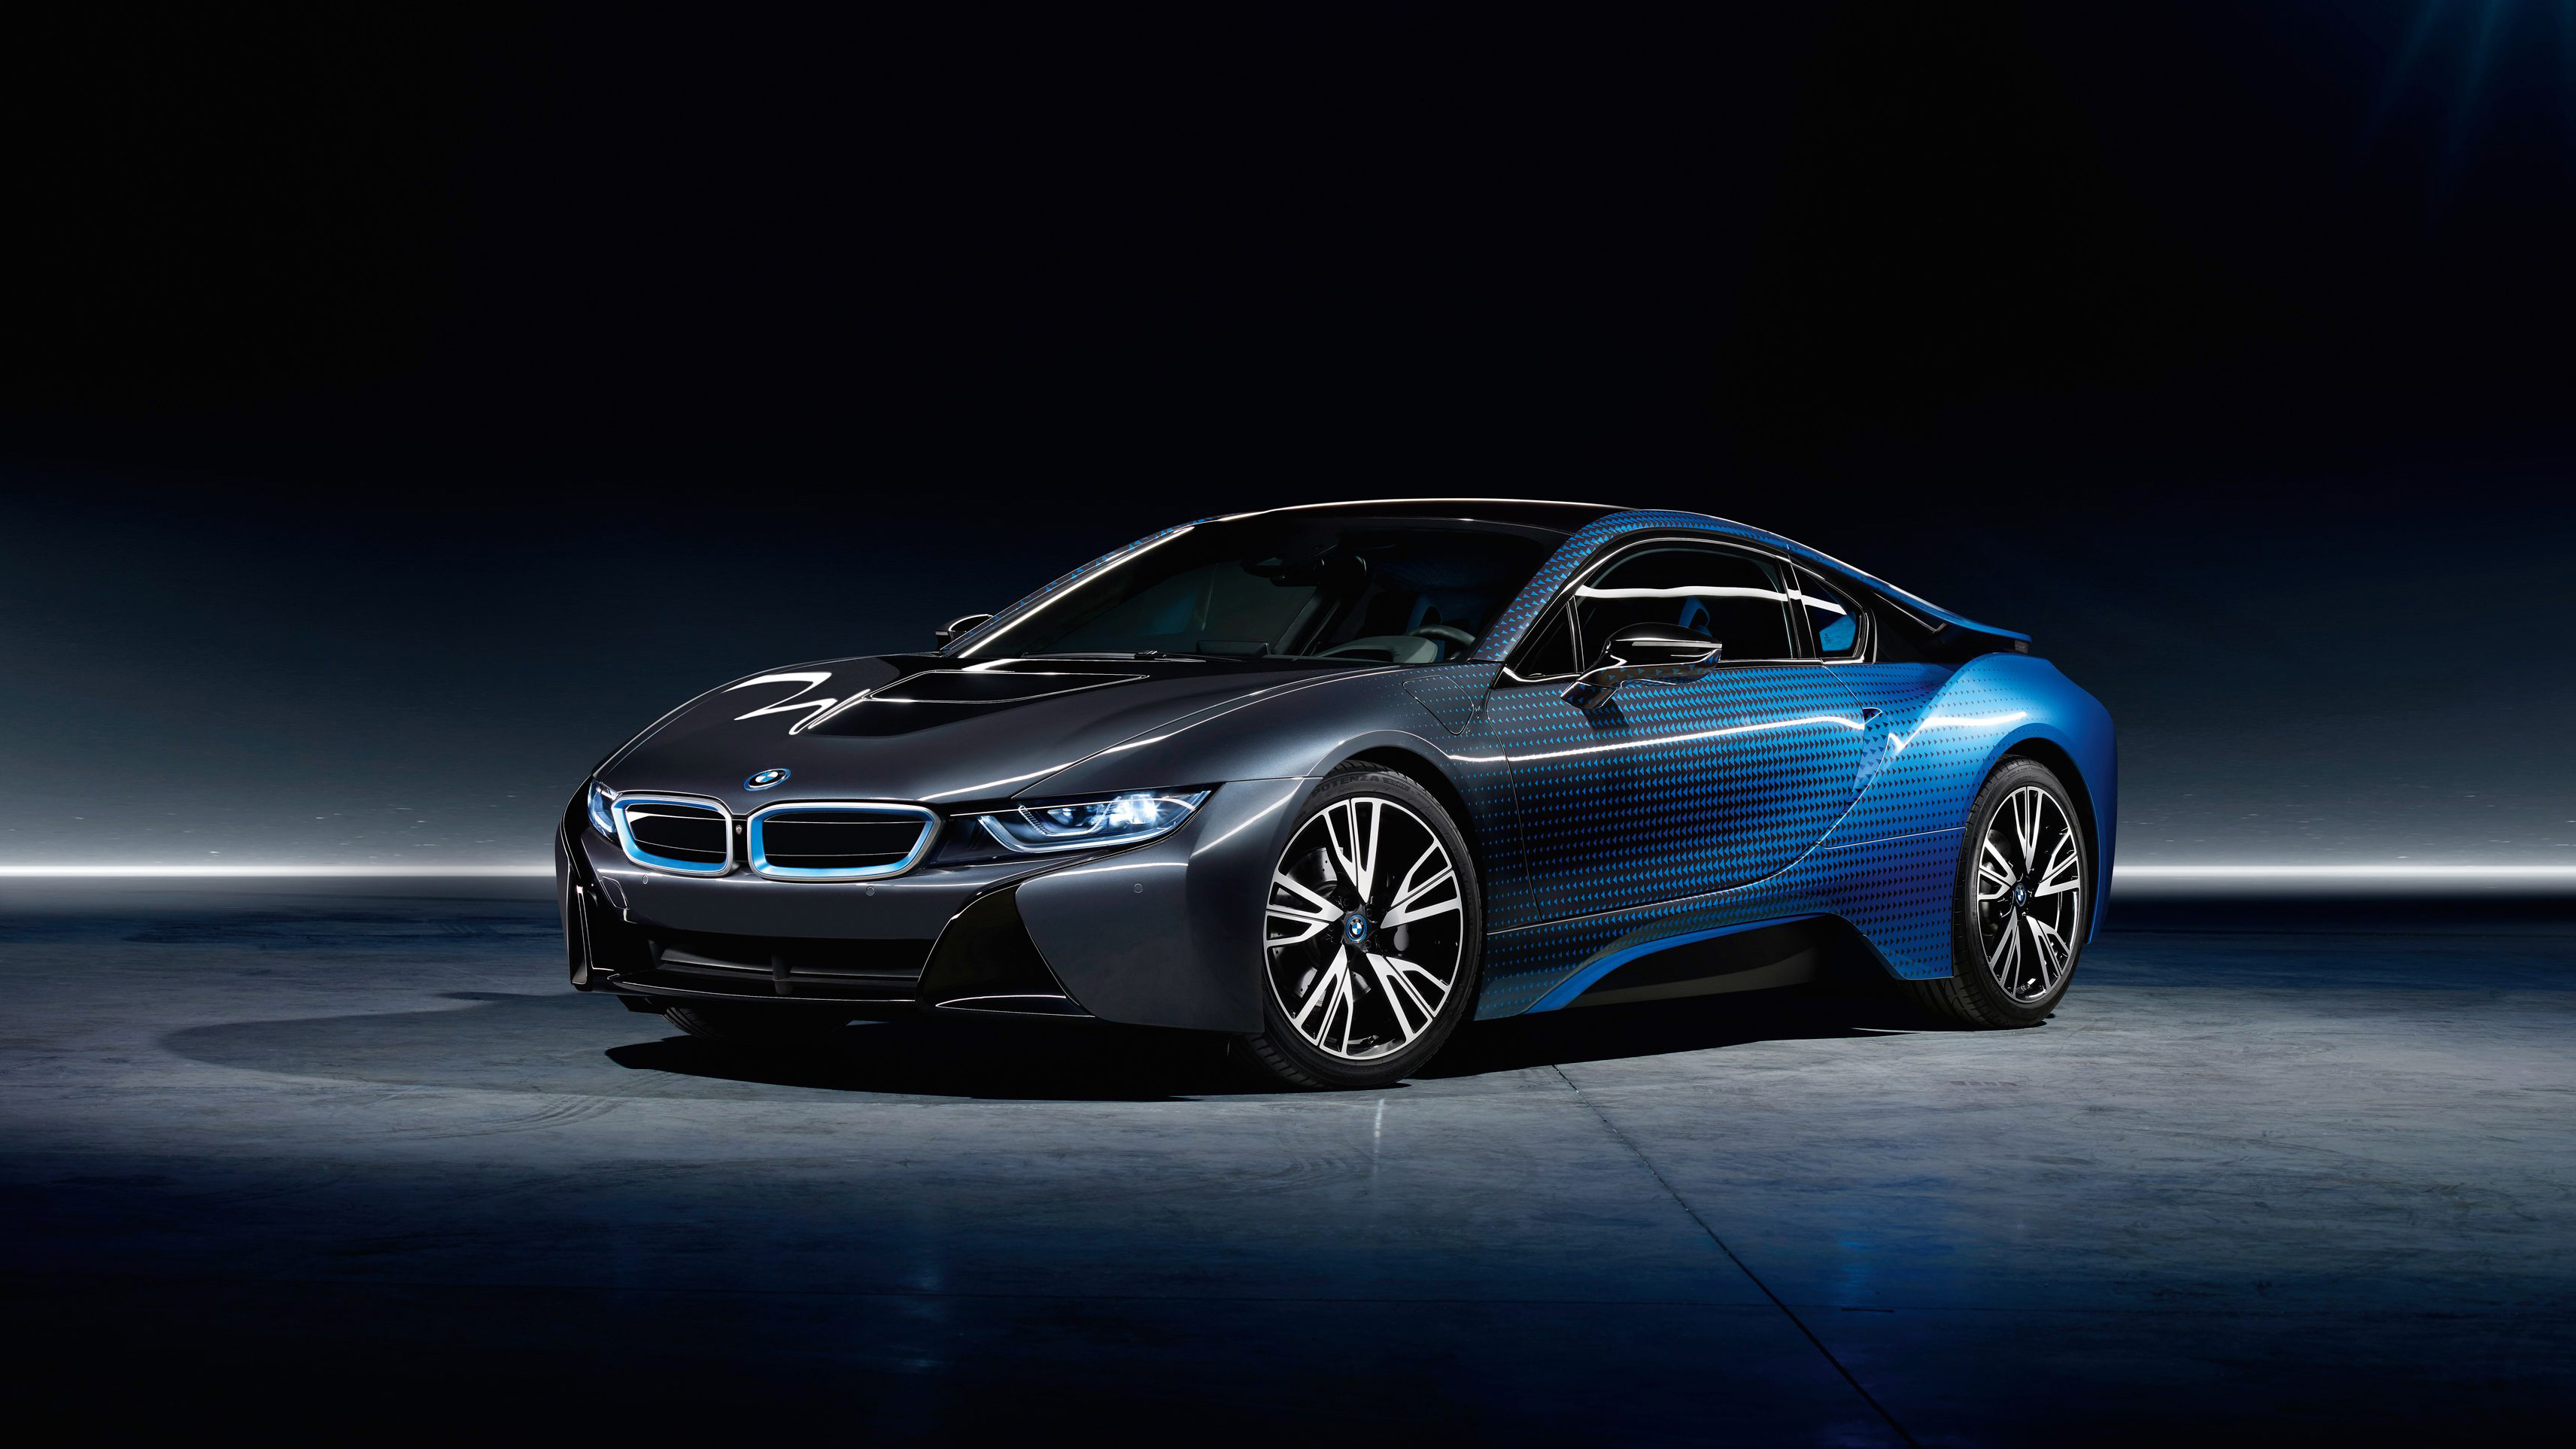 Bmw I Wallpaper With Paint Job